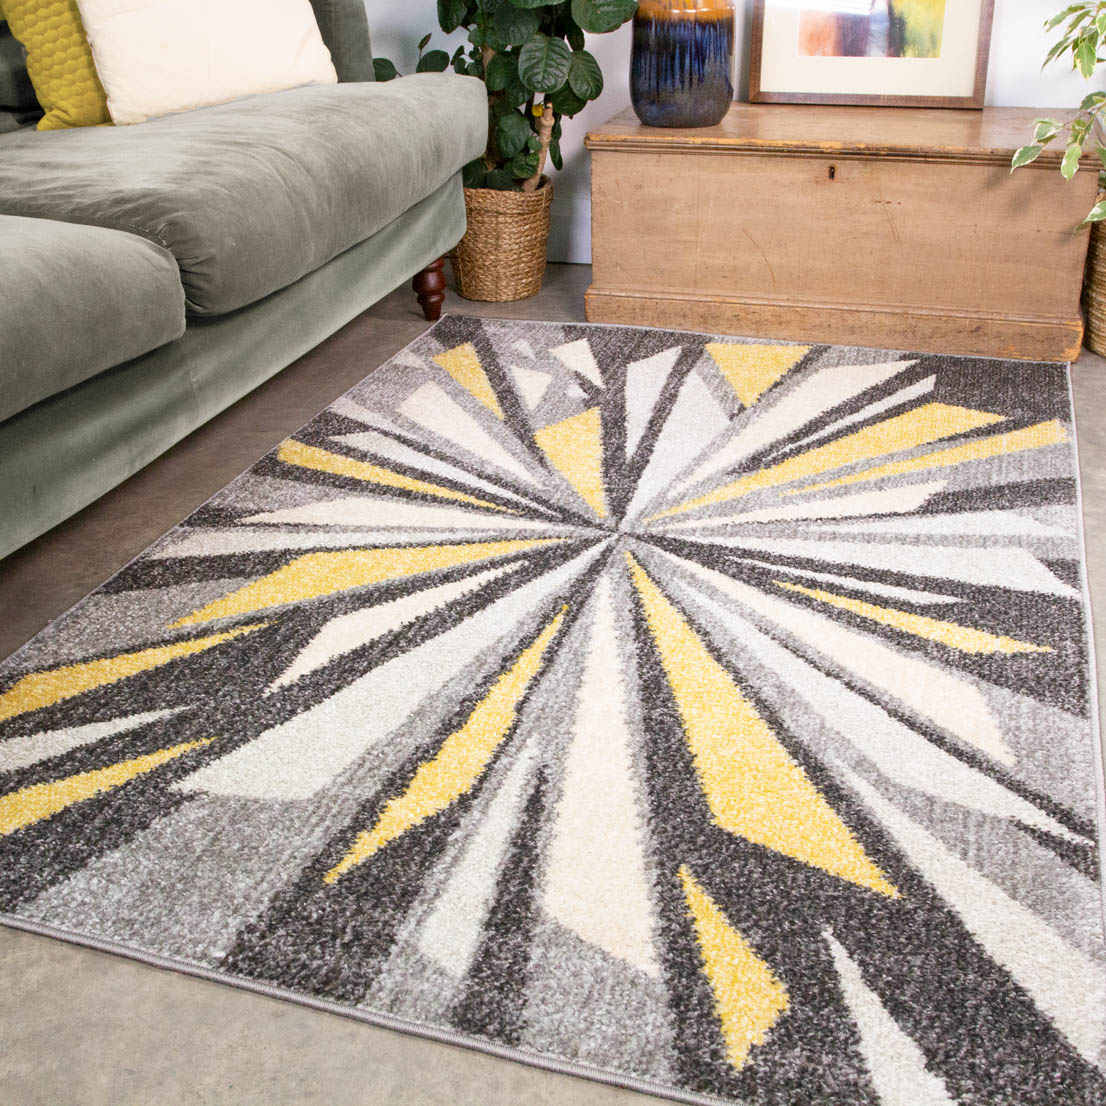 Black Yellow Retro Optical Burst Living Room Rug - Vivid